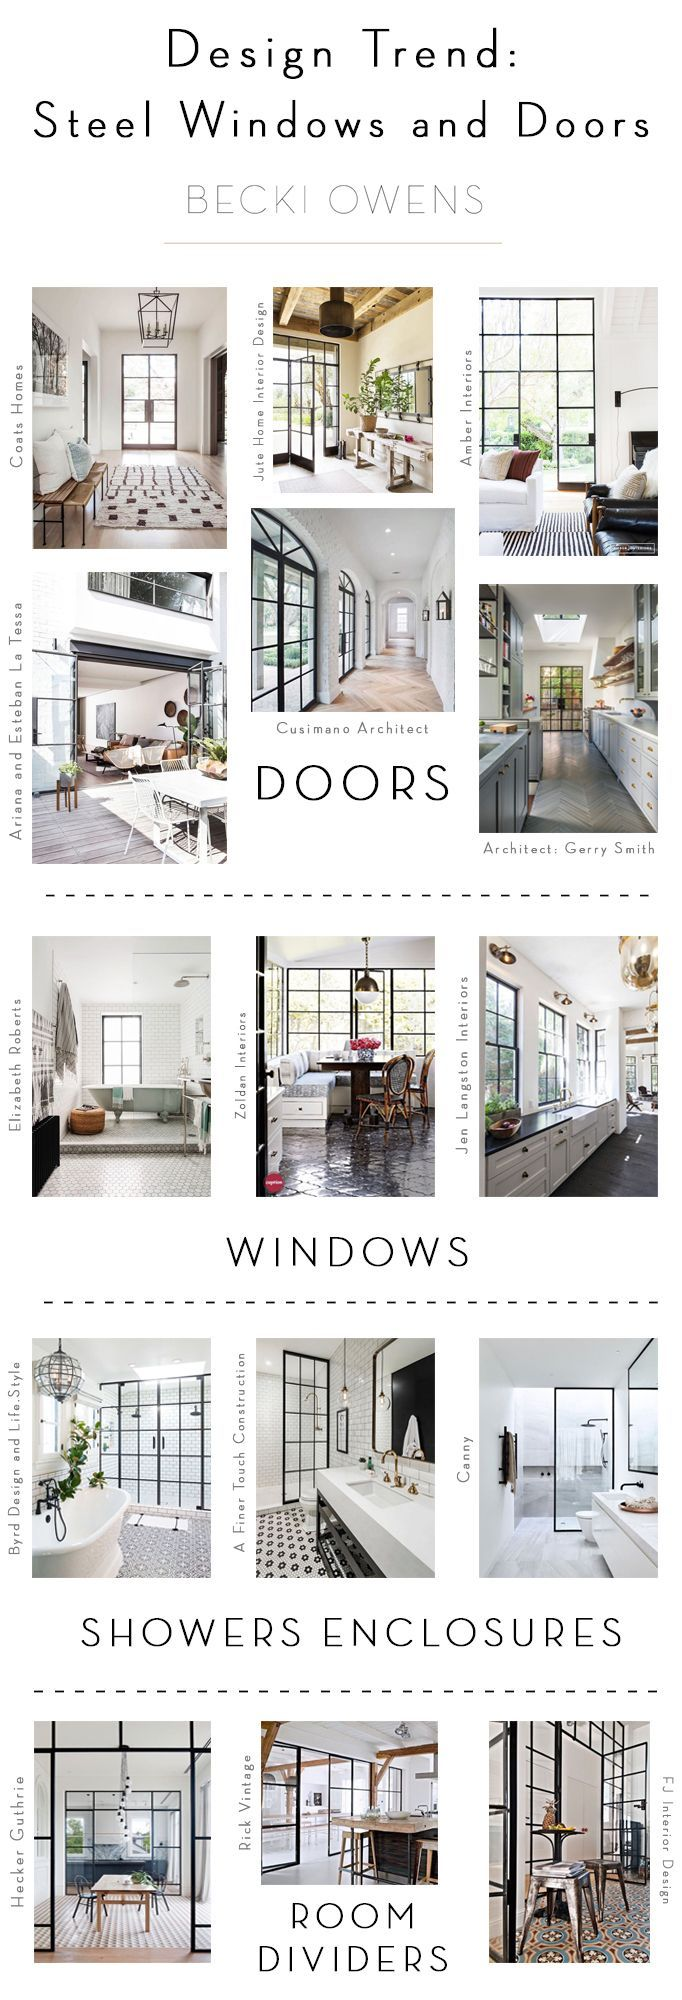 One of my favorite trends in design right now is the use of steel windows and doors.